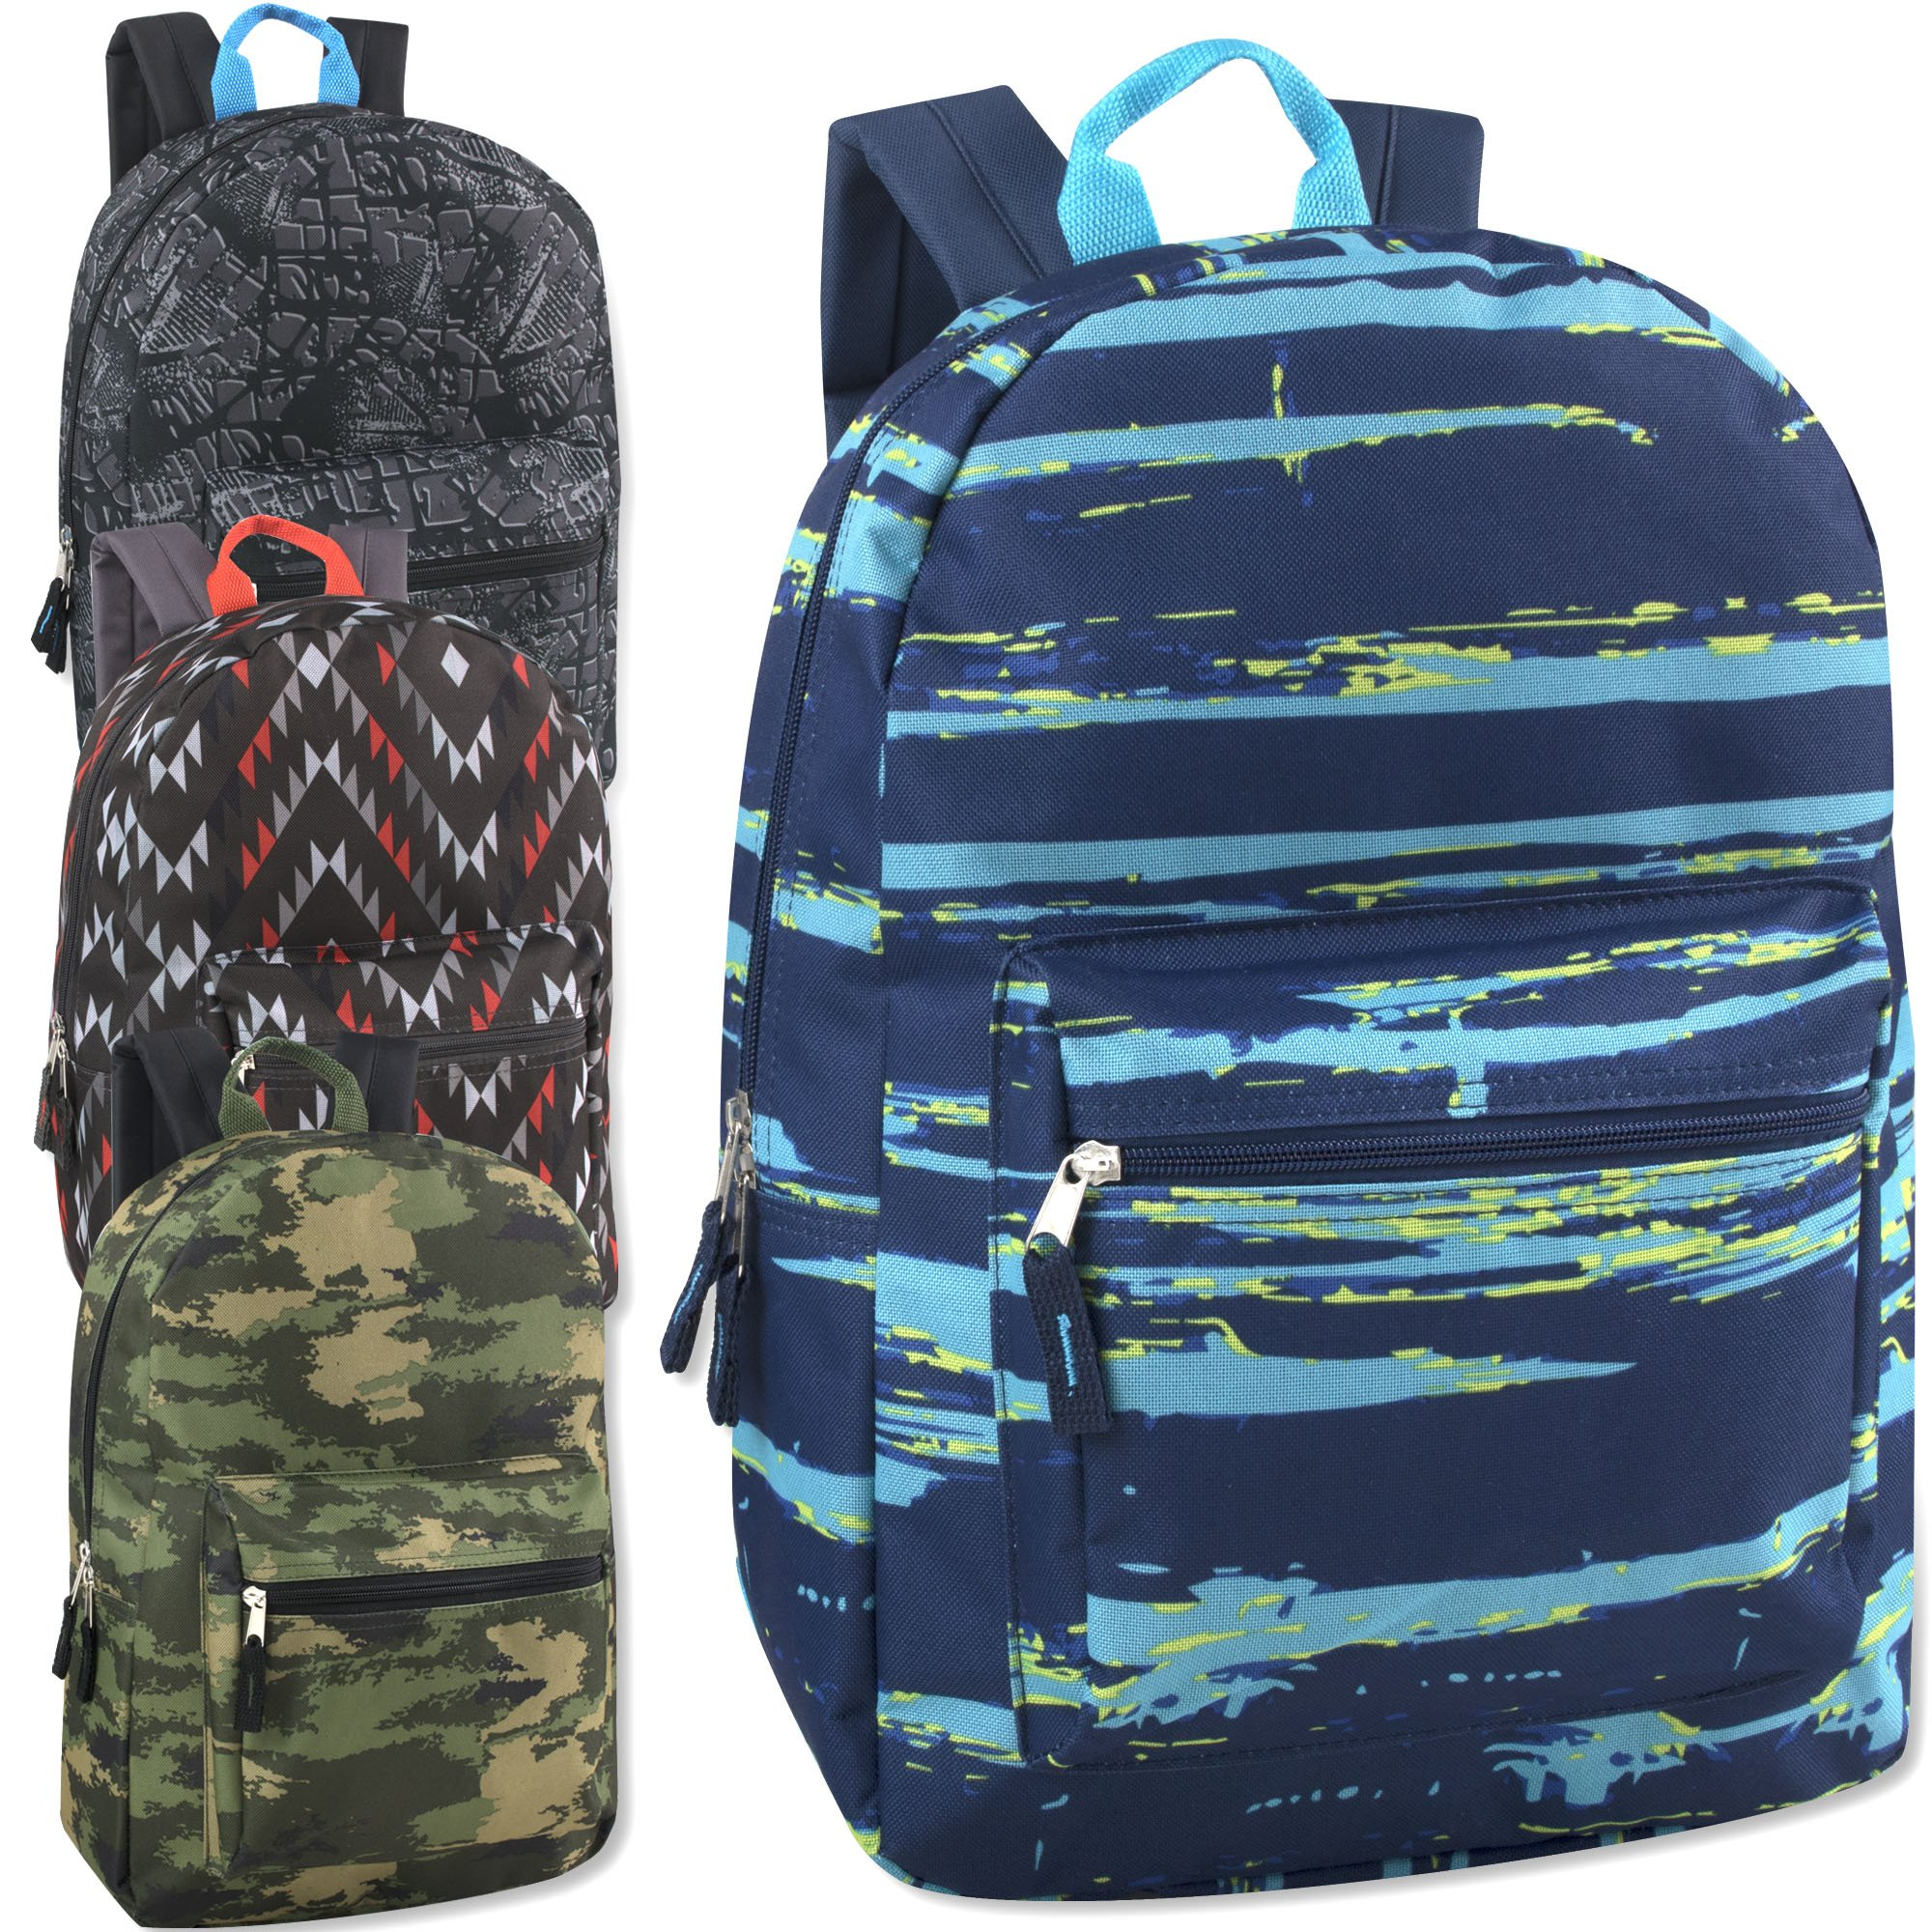 Trailmaker Printed 17 Inch Backpack with Pencil Pouch Wholesale Bulk Case Pack Of 24 (Boys 4 Color Assortment)